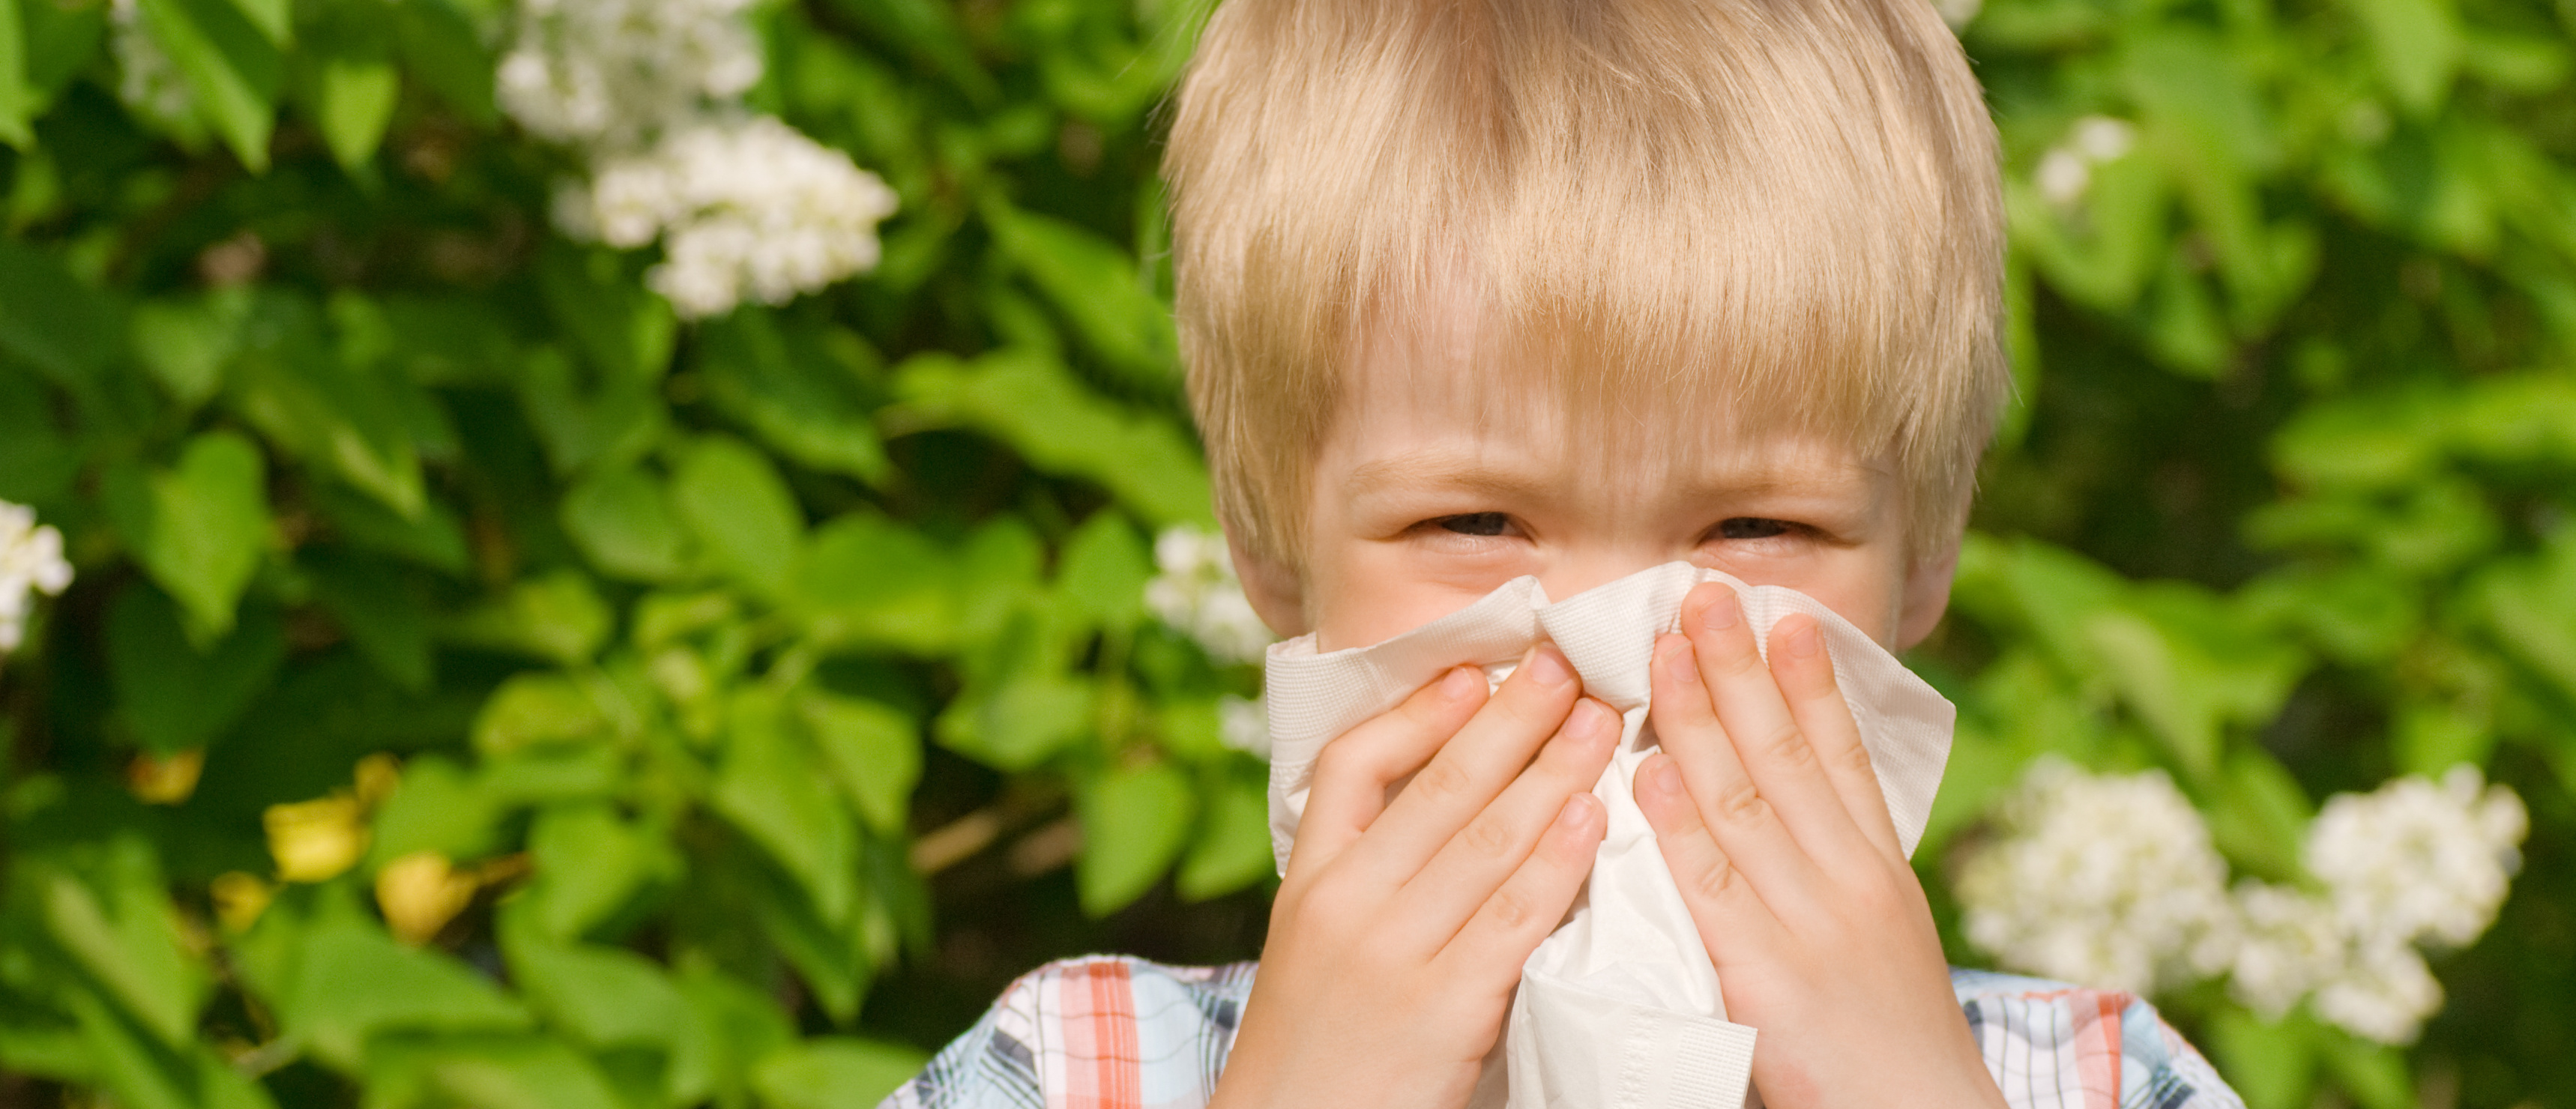 Can Exposing Infants to Allergens Help Reduce Childhood Asthma Risk?